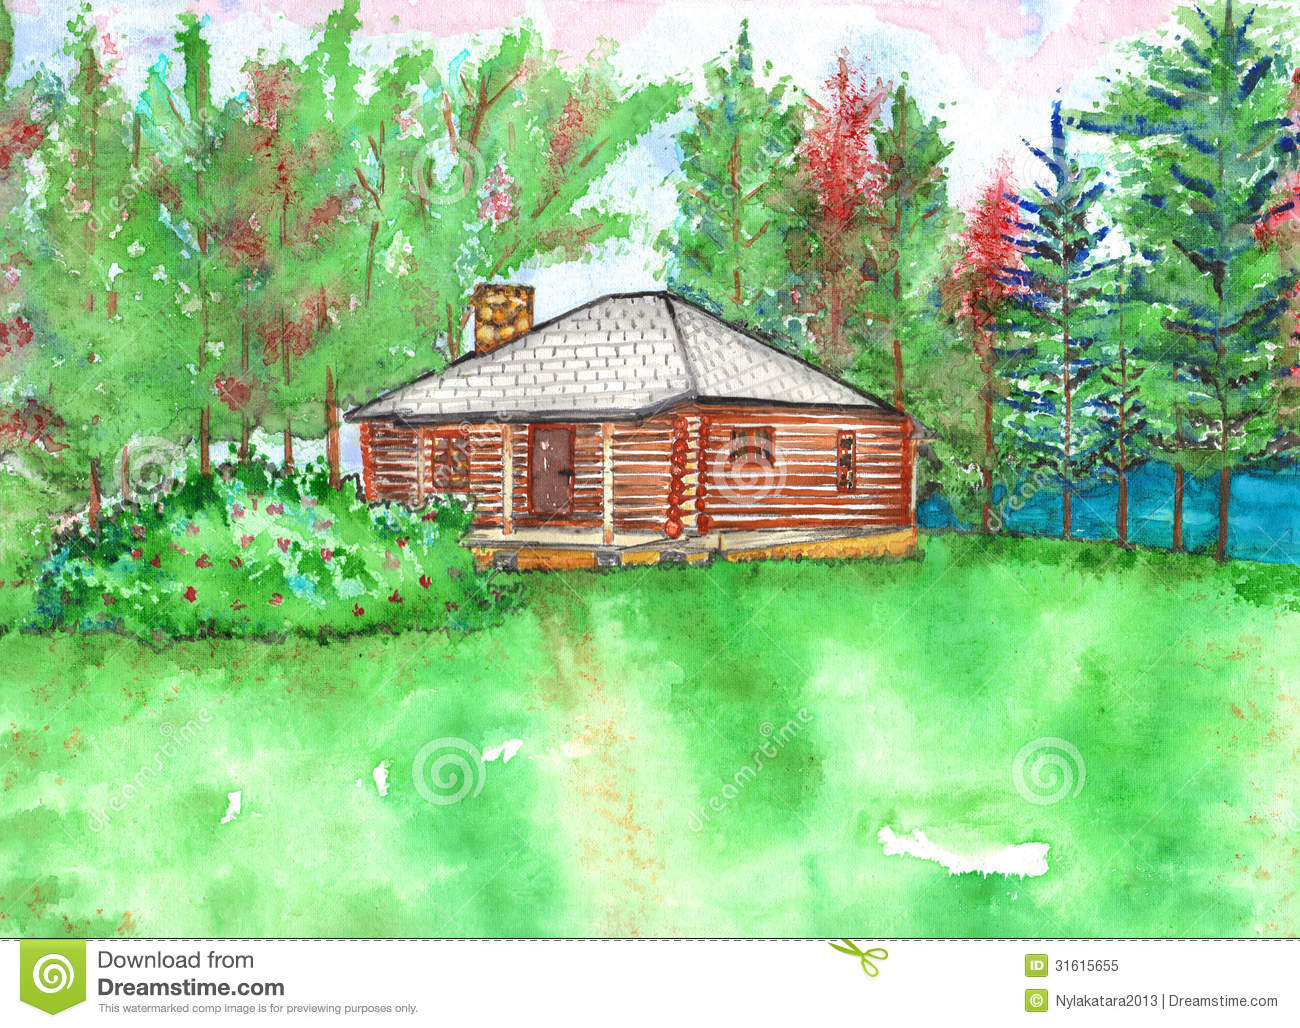 Cottage clipart fairytale cottage Cabin Stock lake clipart 1300x1028